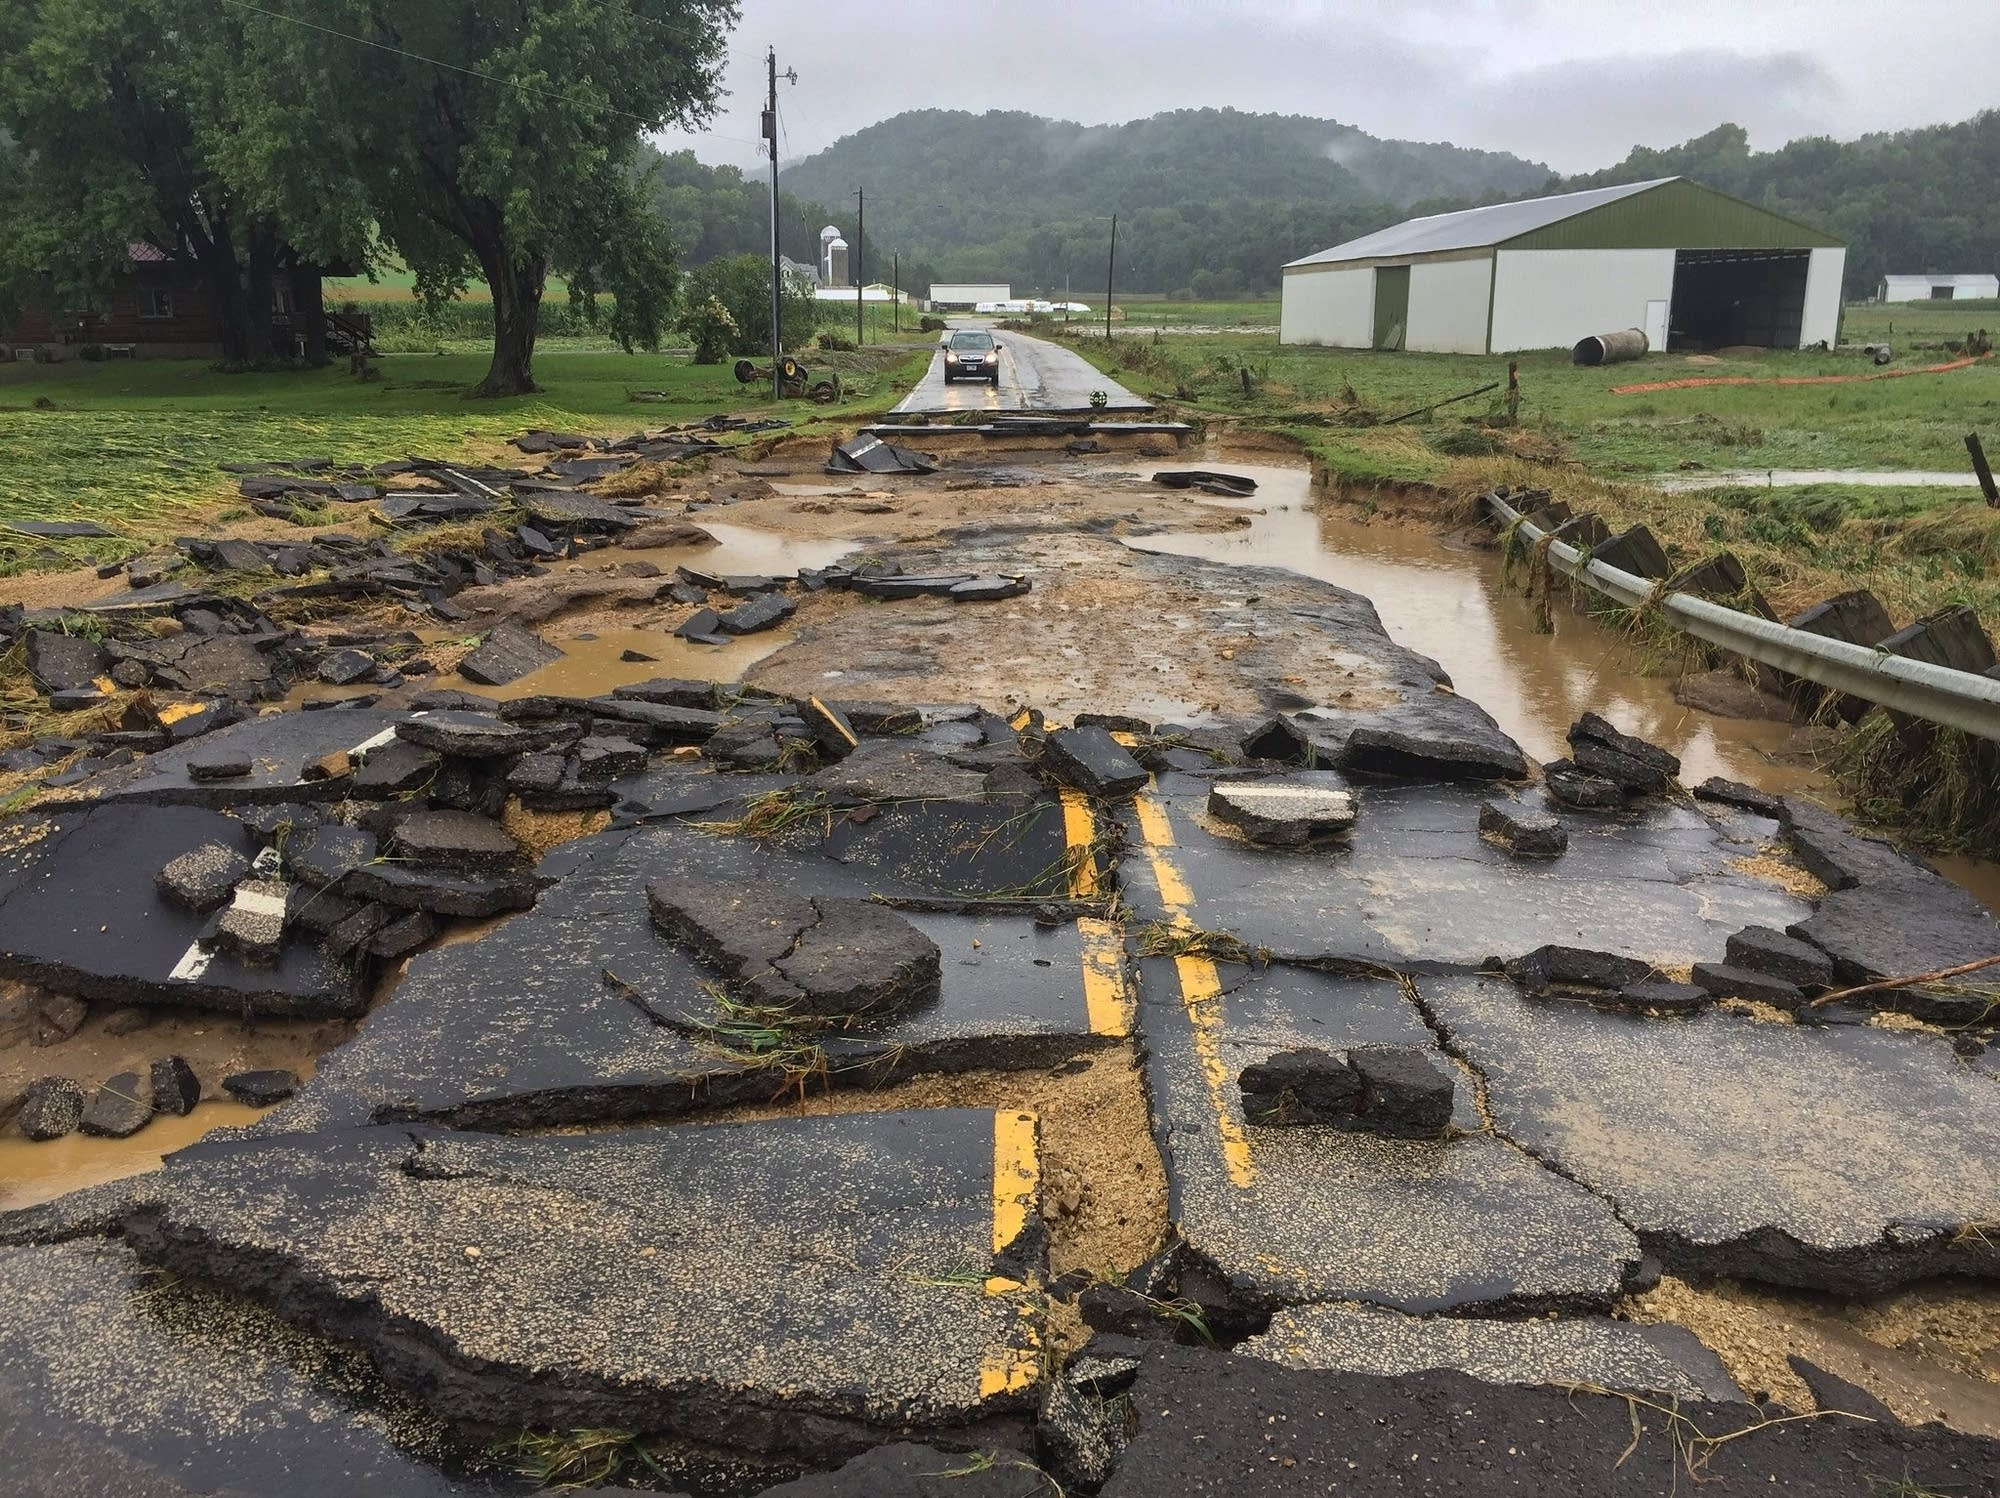 storms in wisconsin minnesota prompt evacuations flooding mpr news